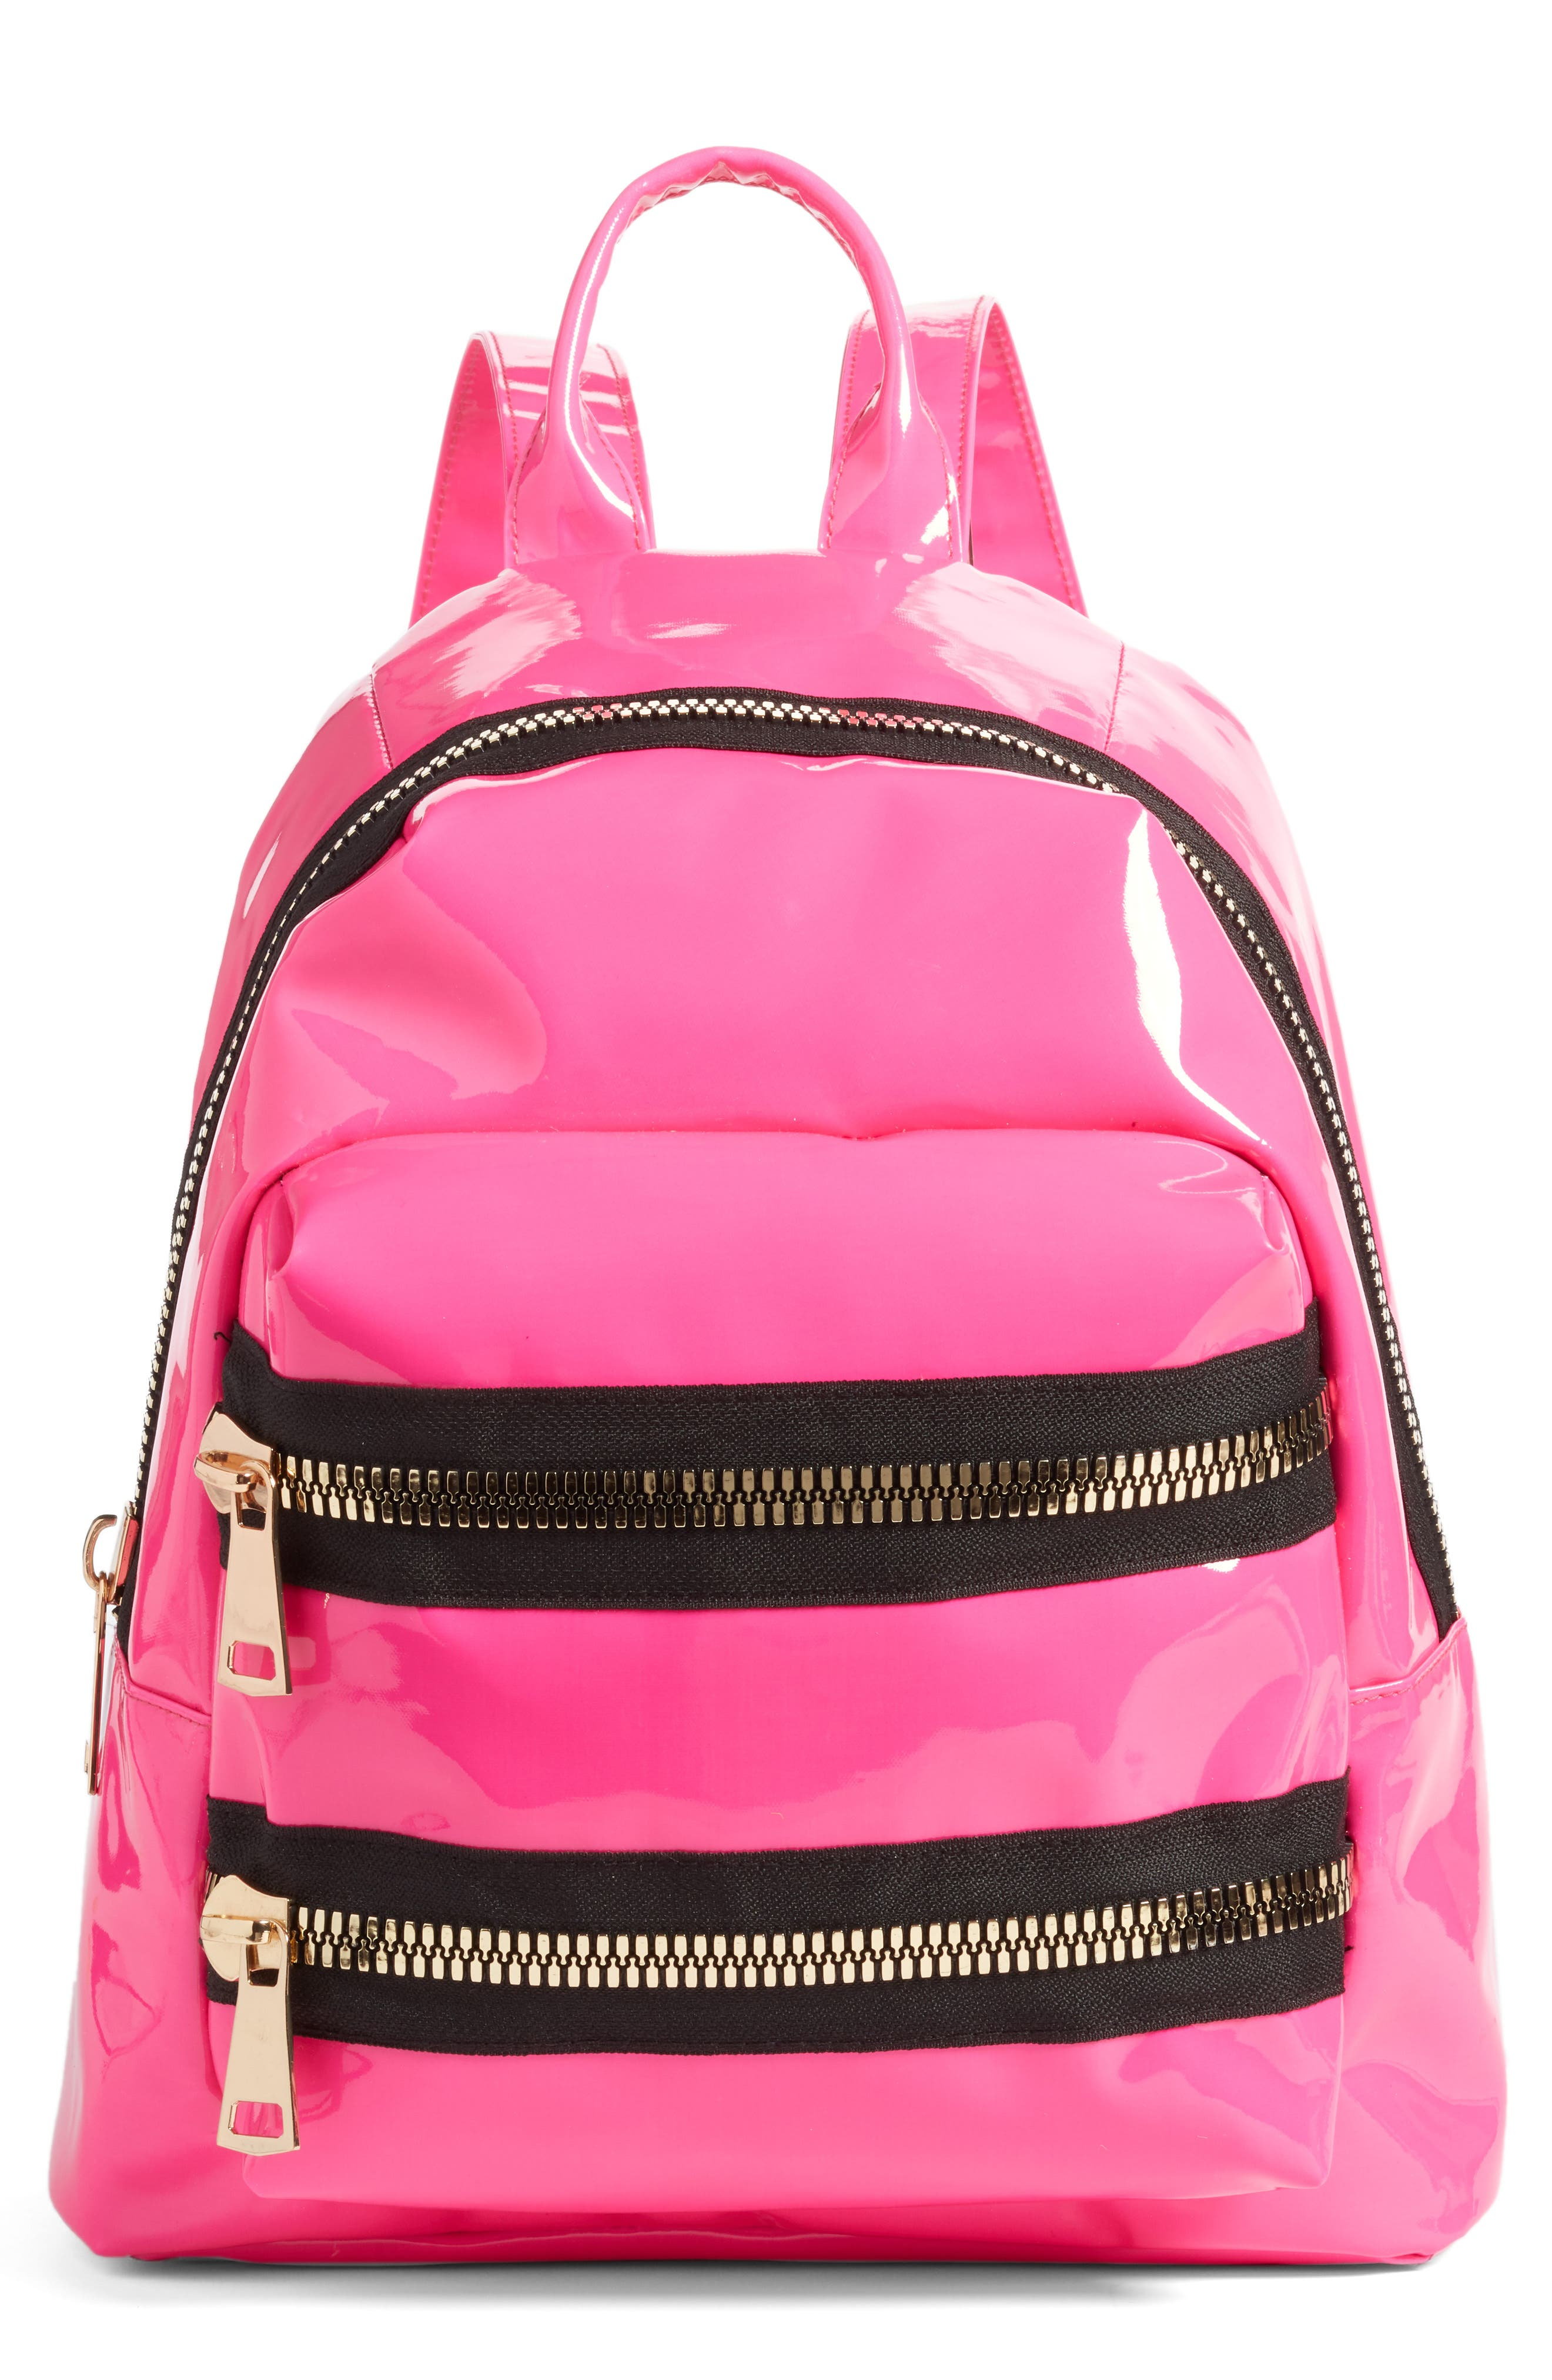 JANE & BERRY, Double Zip Faux Patent Leather Backpack, Main thumbnail 1, color, PINK